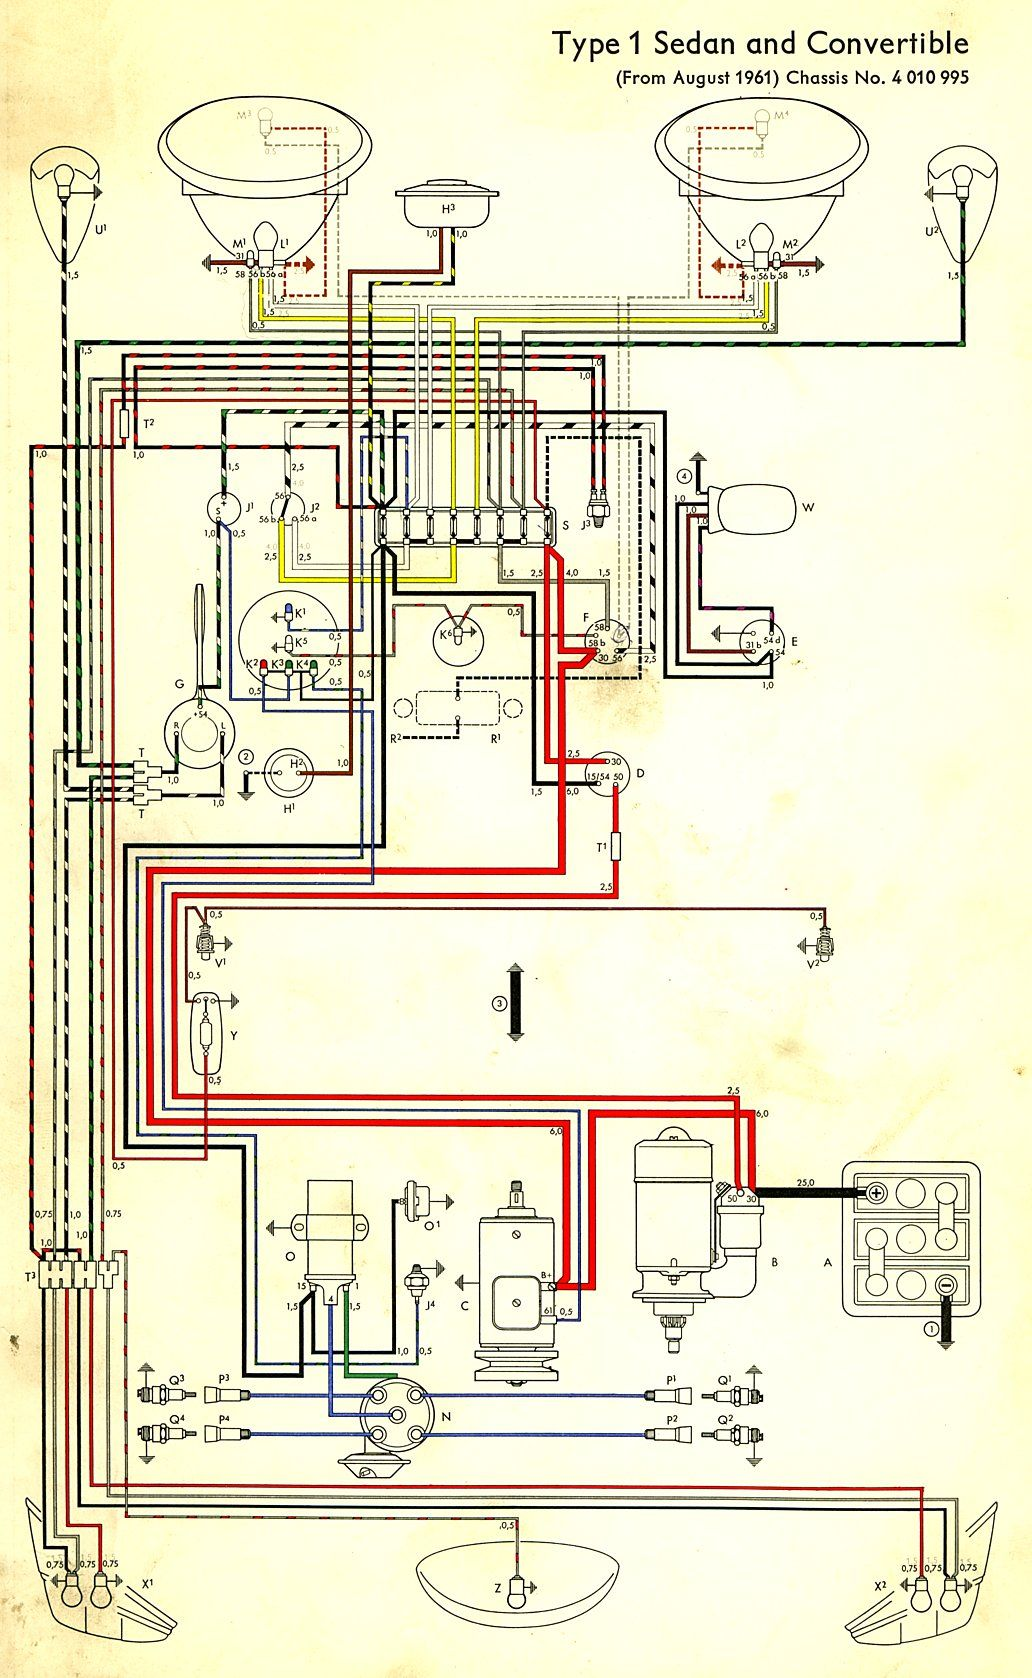 wiring diagram in color 1964 vw bug beetle convertible the samba [ 1032 x 1678 Pixel ]